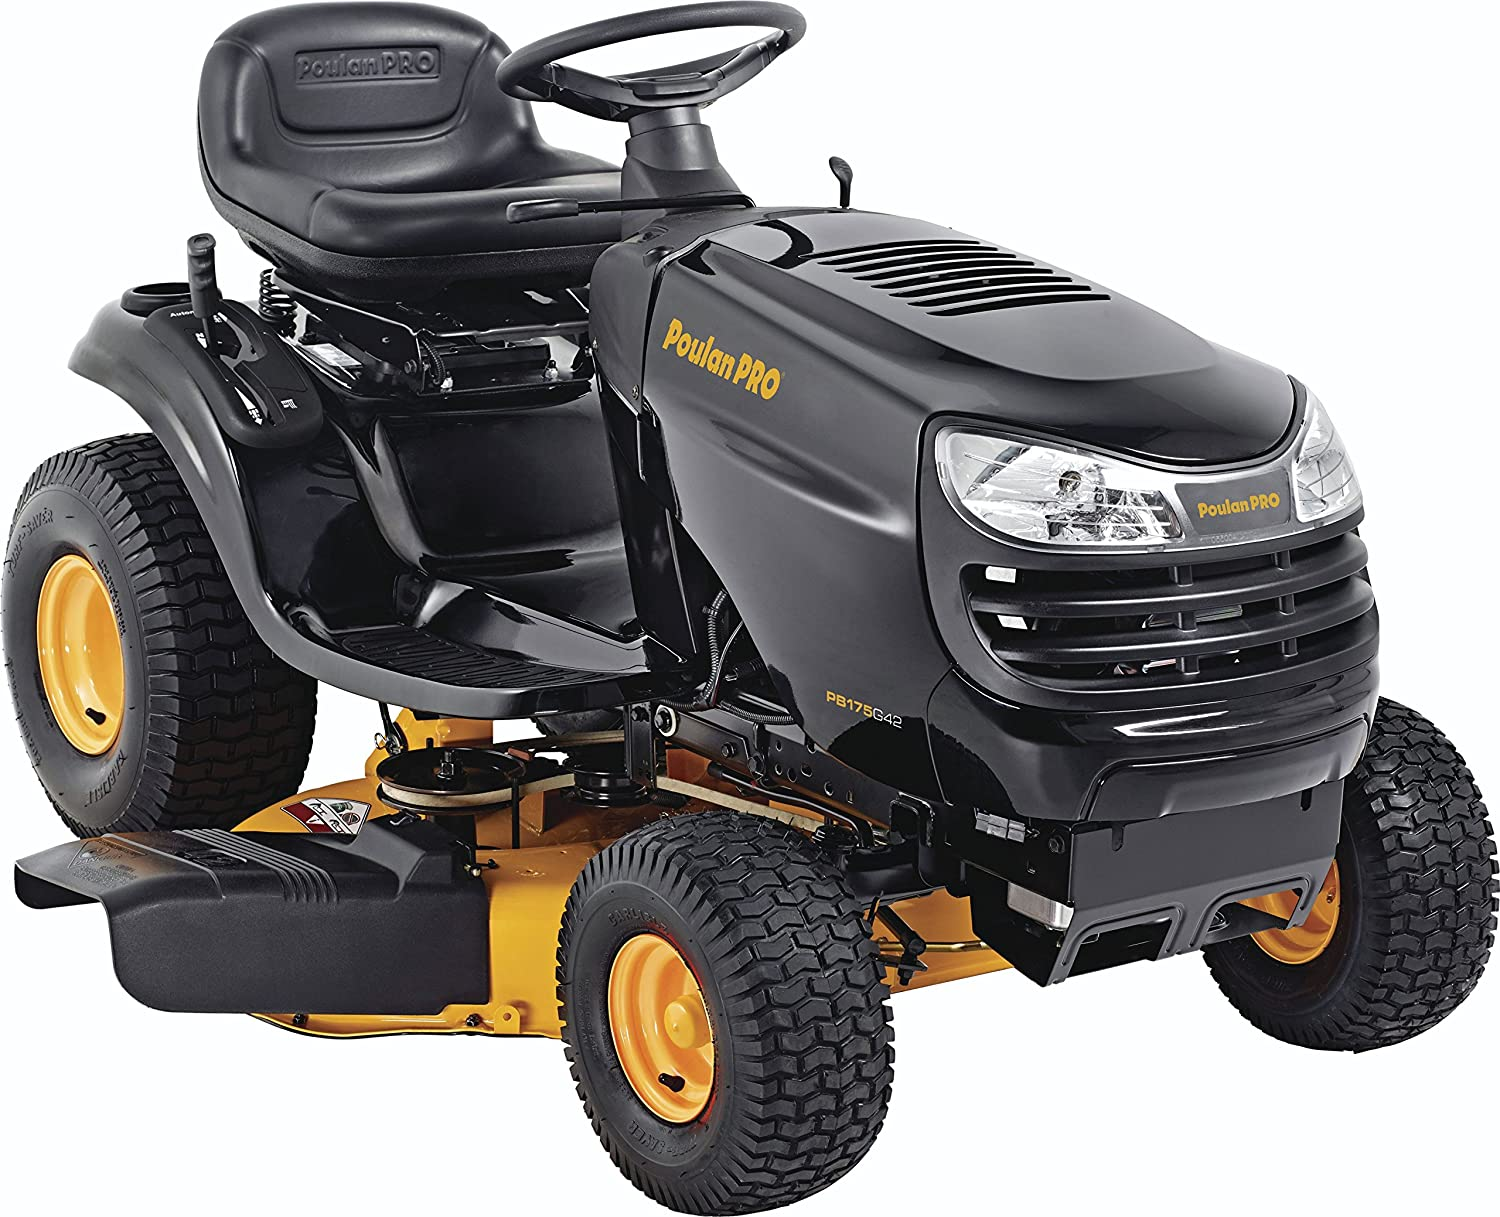 Best Lawn Mowers : Best lawn mowers and tractors